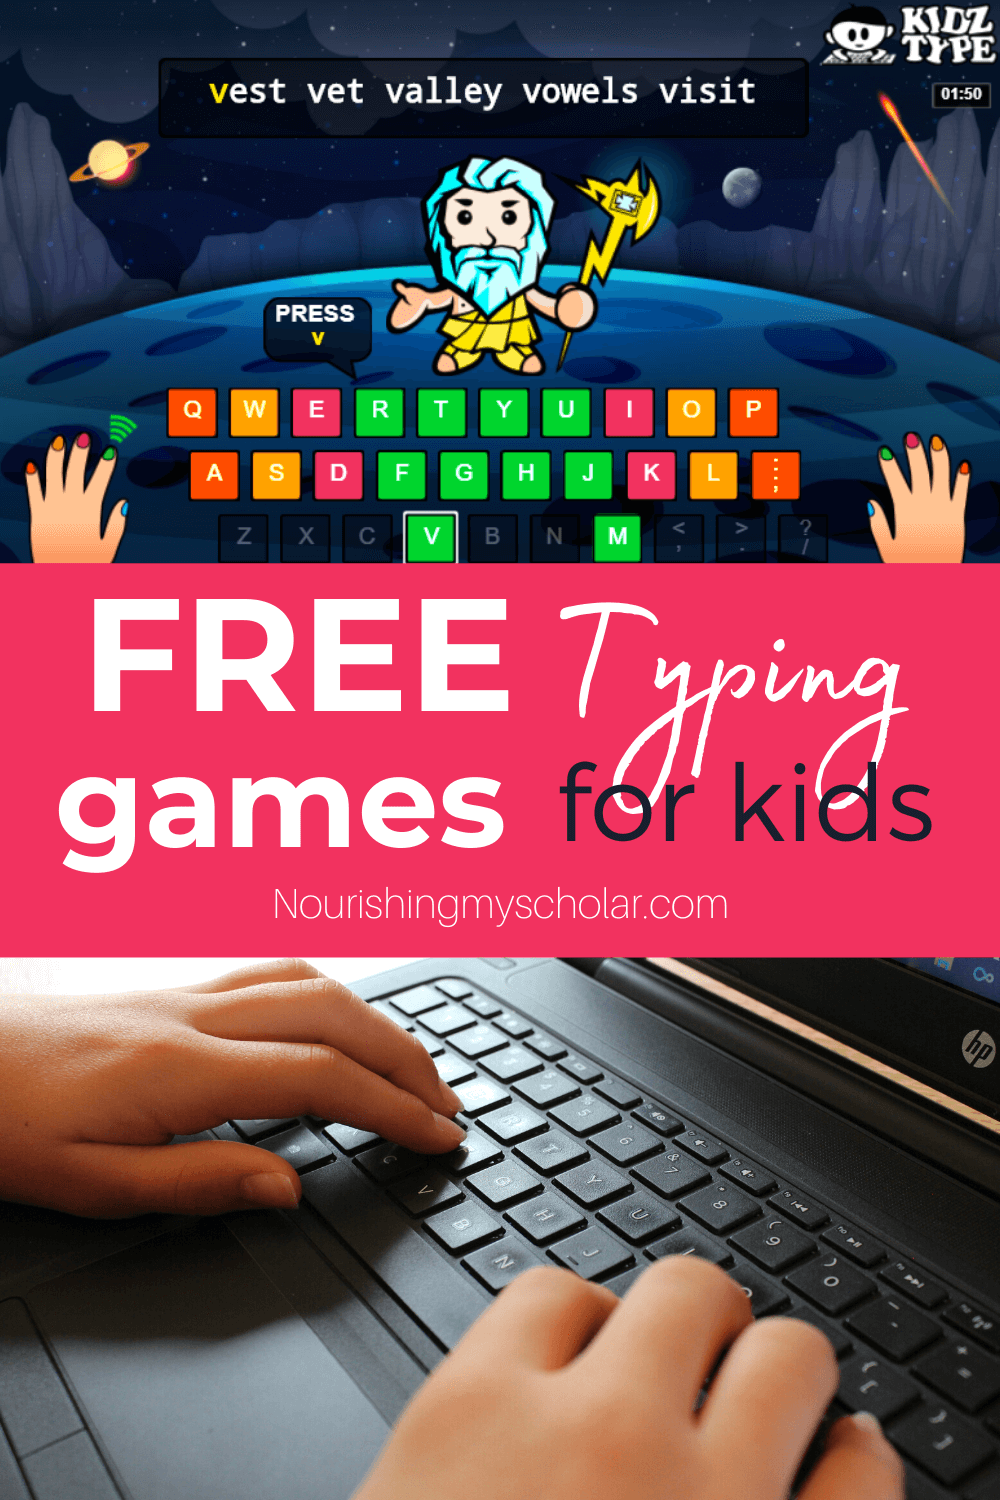 Free Typing Games for Kids: Free typing games and practice make learning touch typing fun and easy for your kids! Check out these games for all skill levels! #freetyping #freetypinggames #freetypinggamesforkids #kidstypinggames #typingpracticegames #typingforkids #typinggamesforkids #KidzType #homeschool